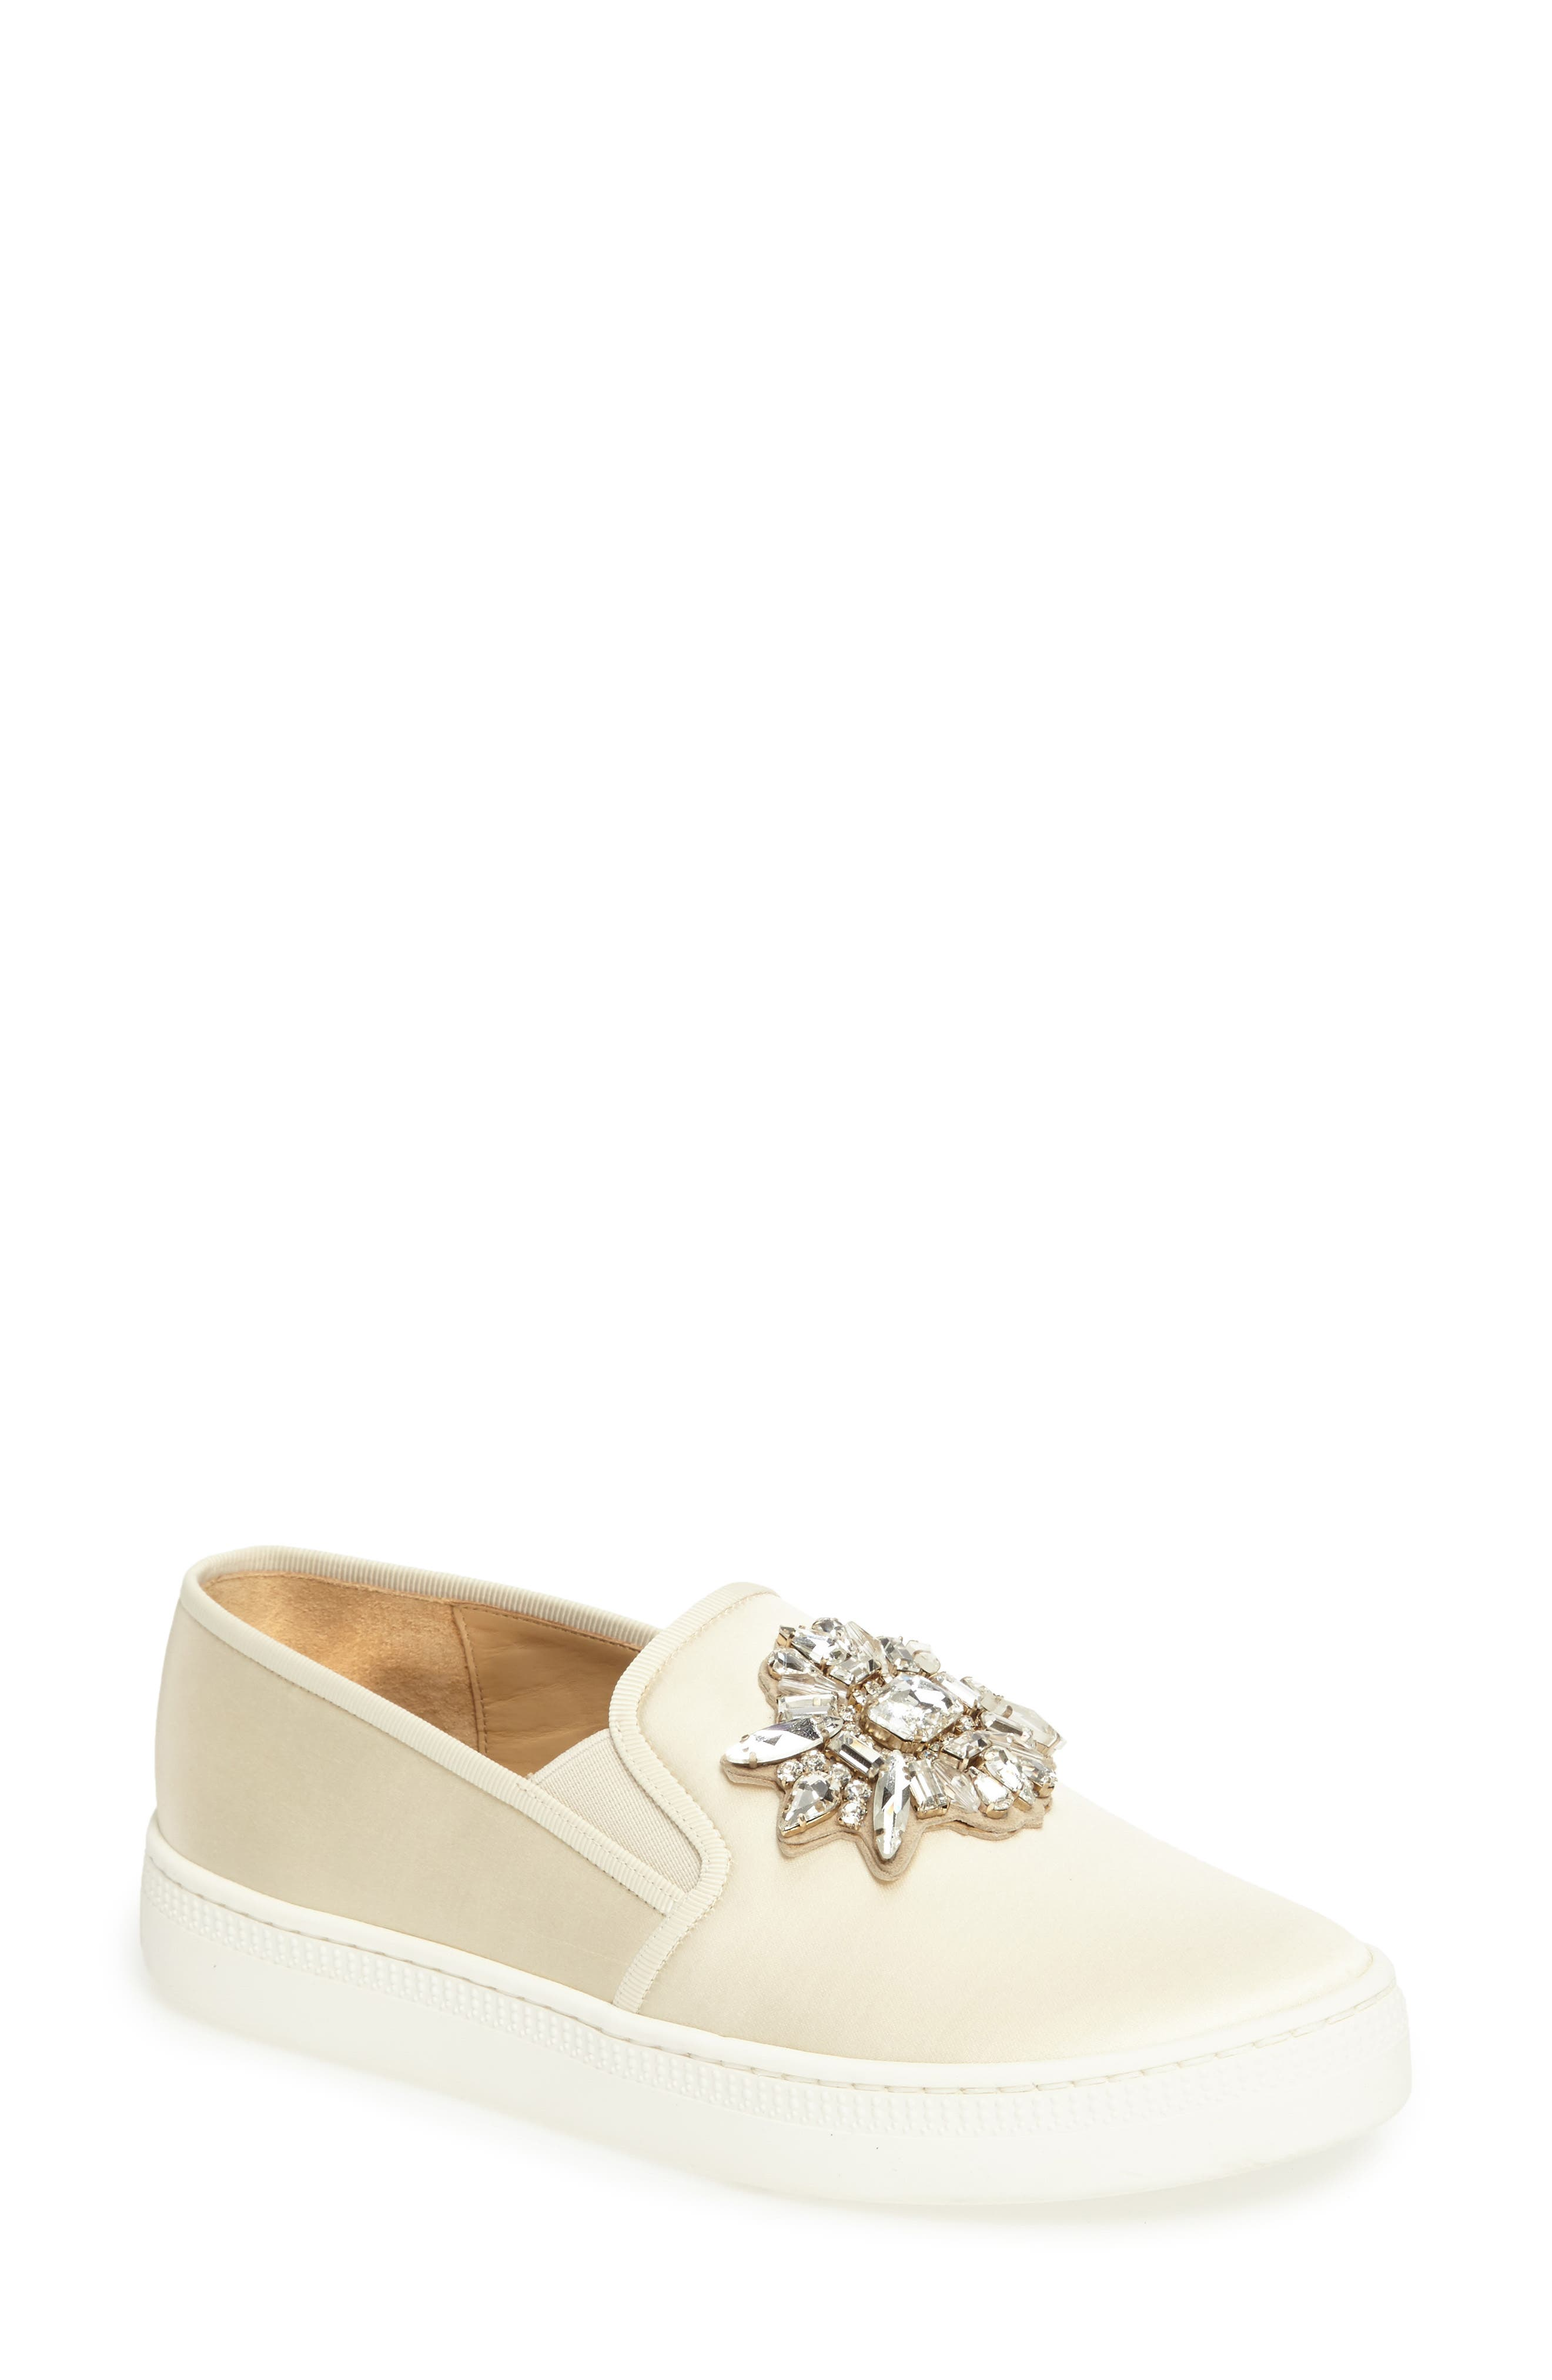 Badgley Mischka Barre Crystal Embellished Slip-On Sneaker (Women)